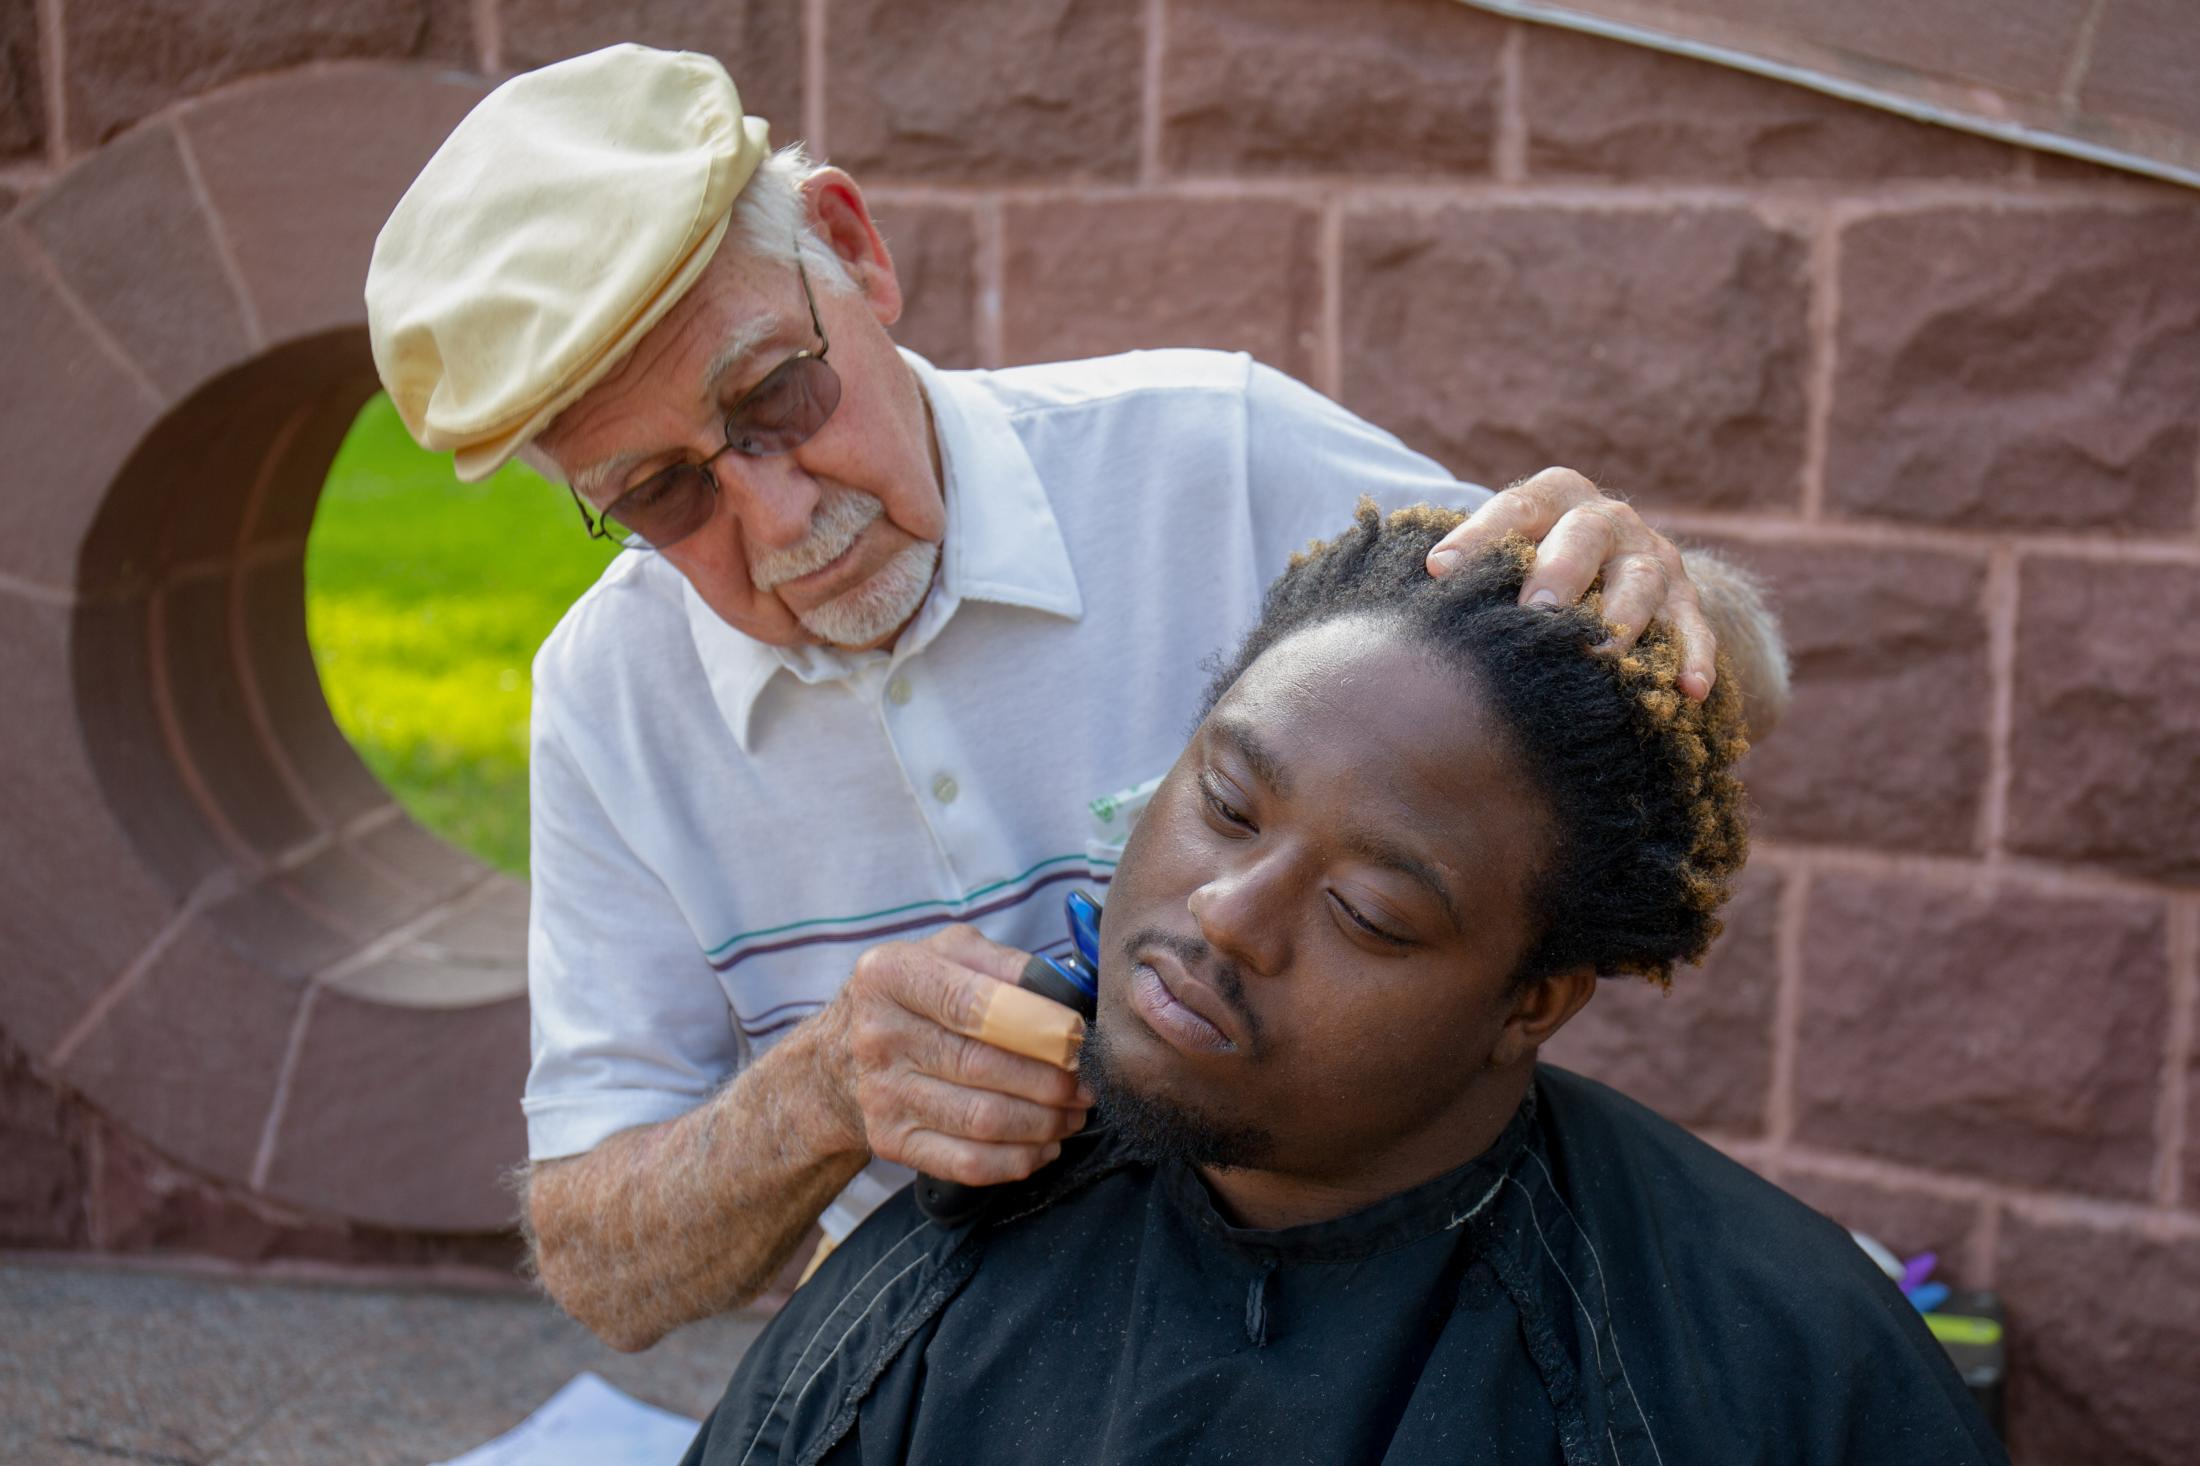 Anthony Cymerys of Hartford, CT, also known as Joe the Barber who has been giving out free haircuts for over 30 years, gives a shave and a haircut to Mark Bonner also from Hartford in Bushnell Park on May 22, 2019.